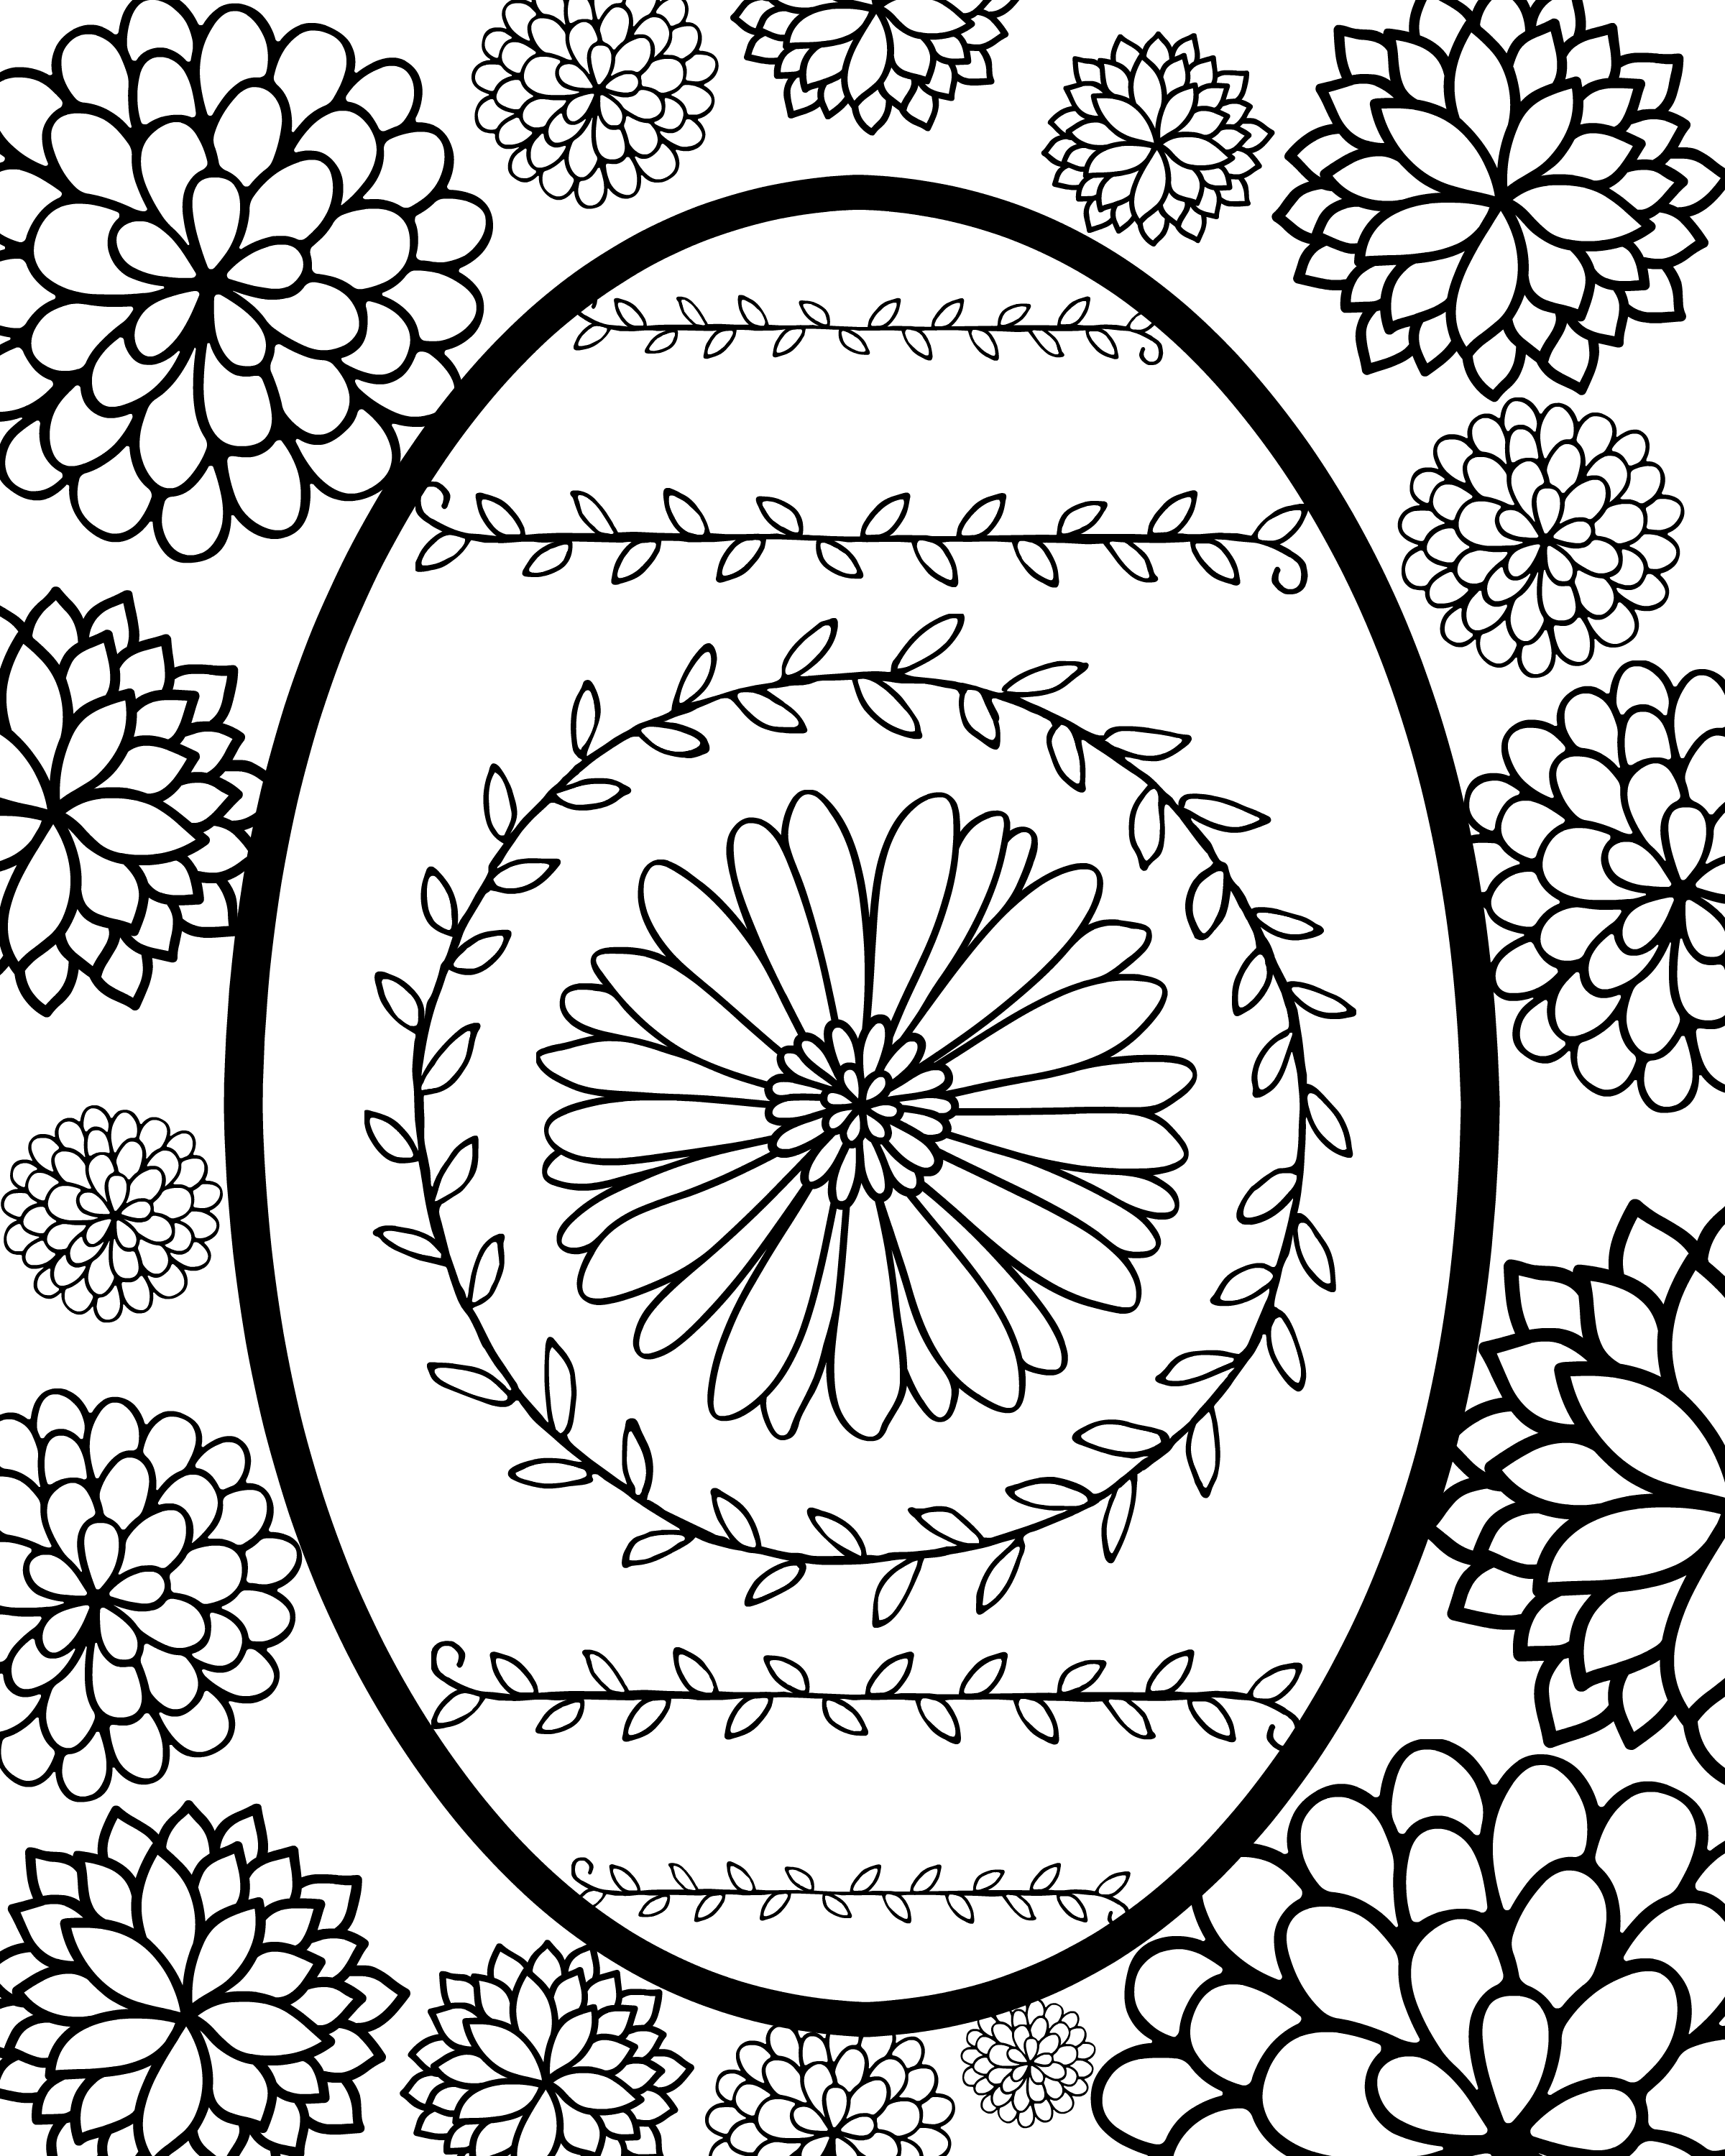 DIY Faberge egg style Easter egg printable coloring page.